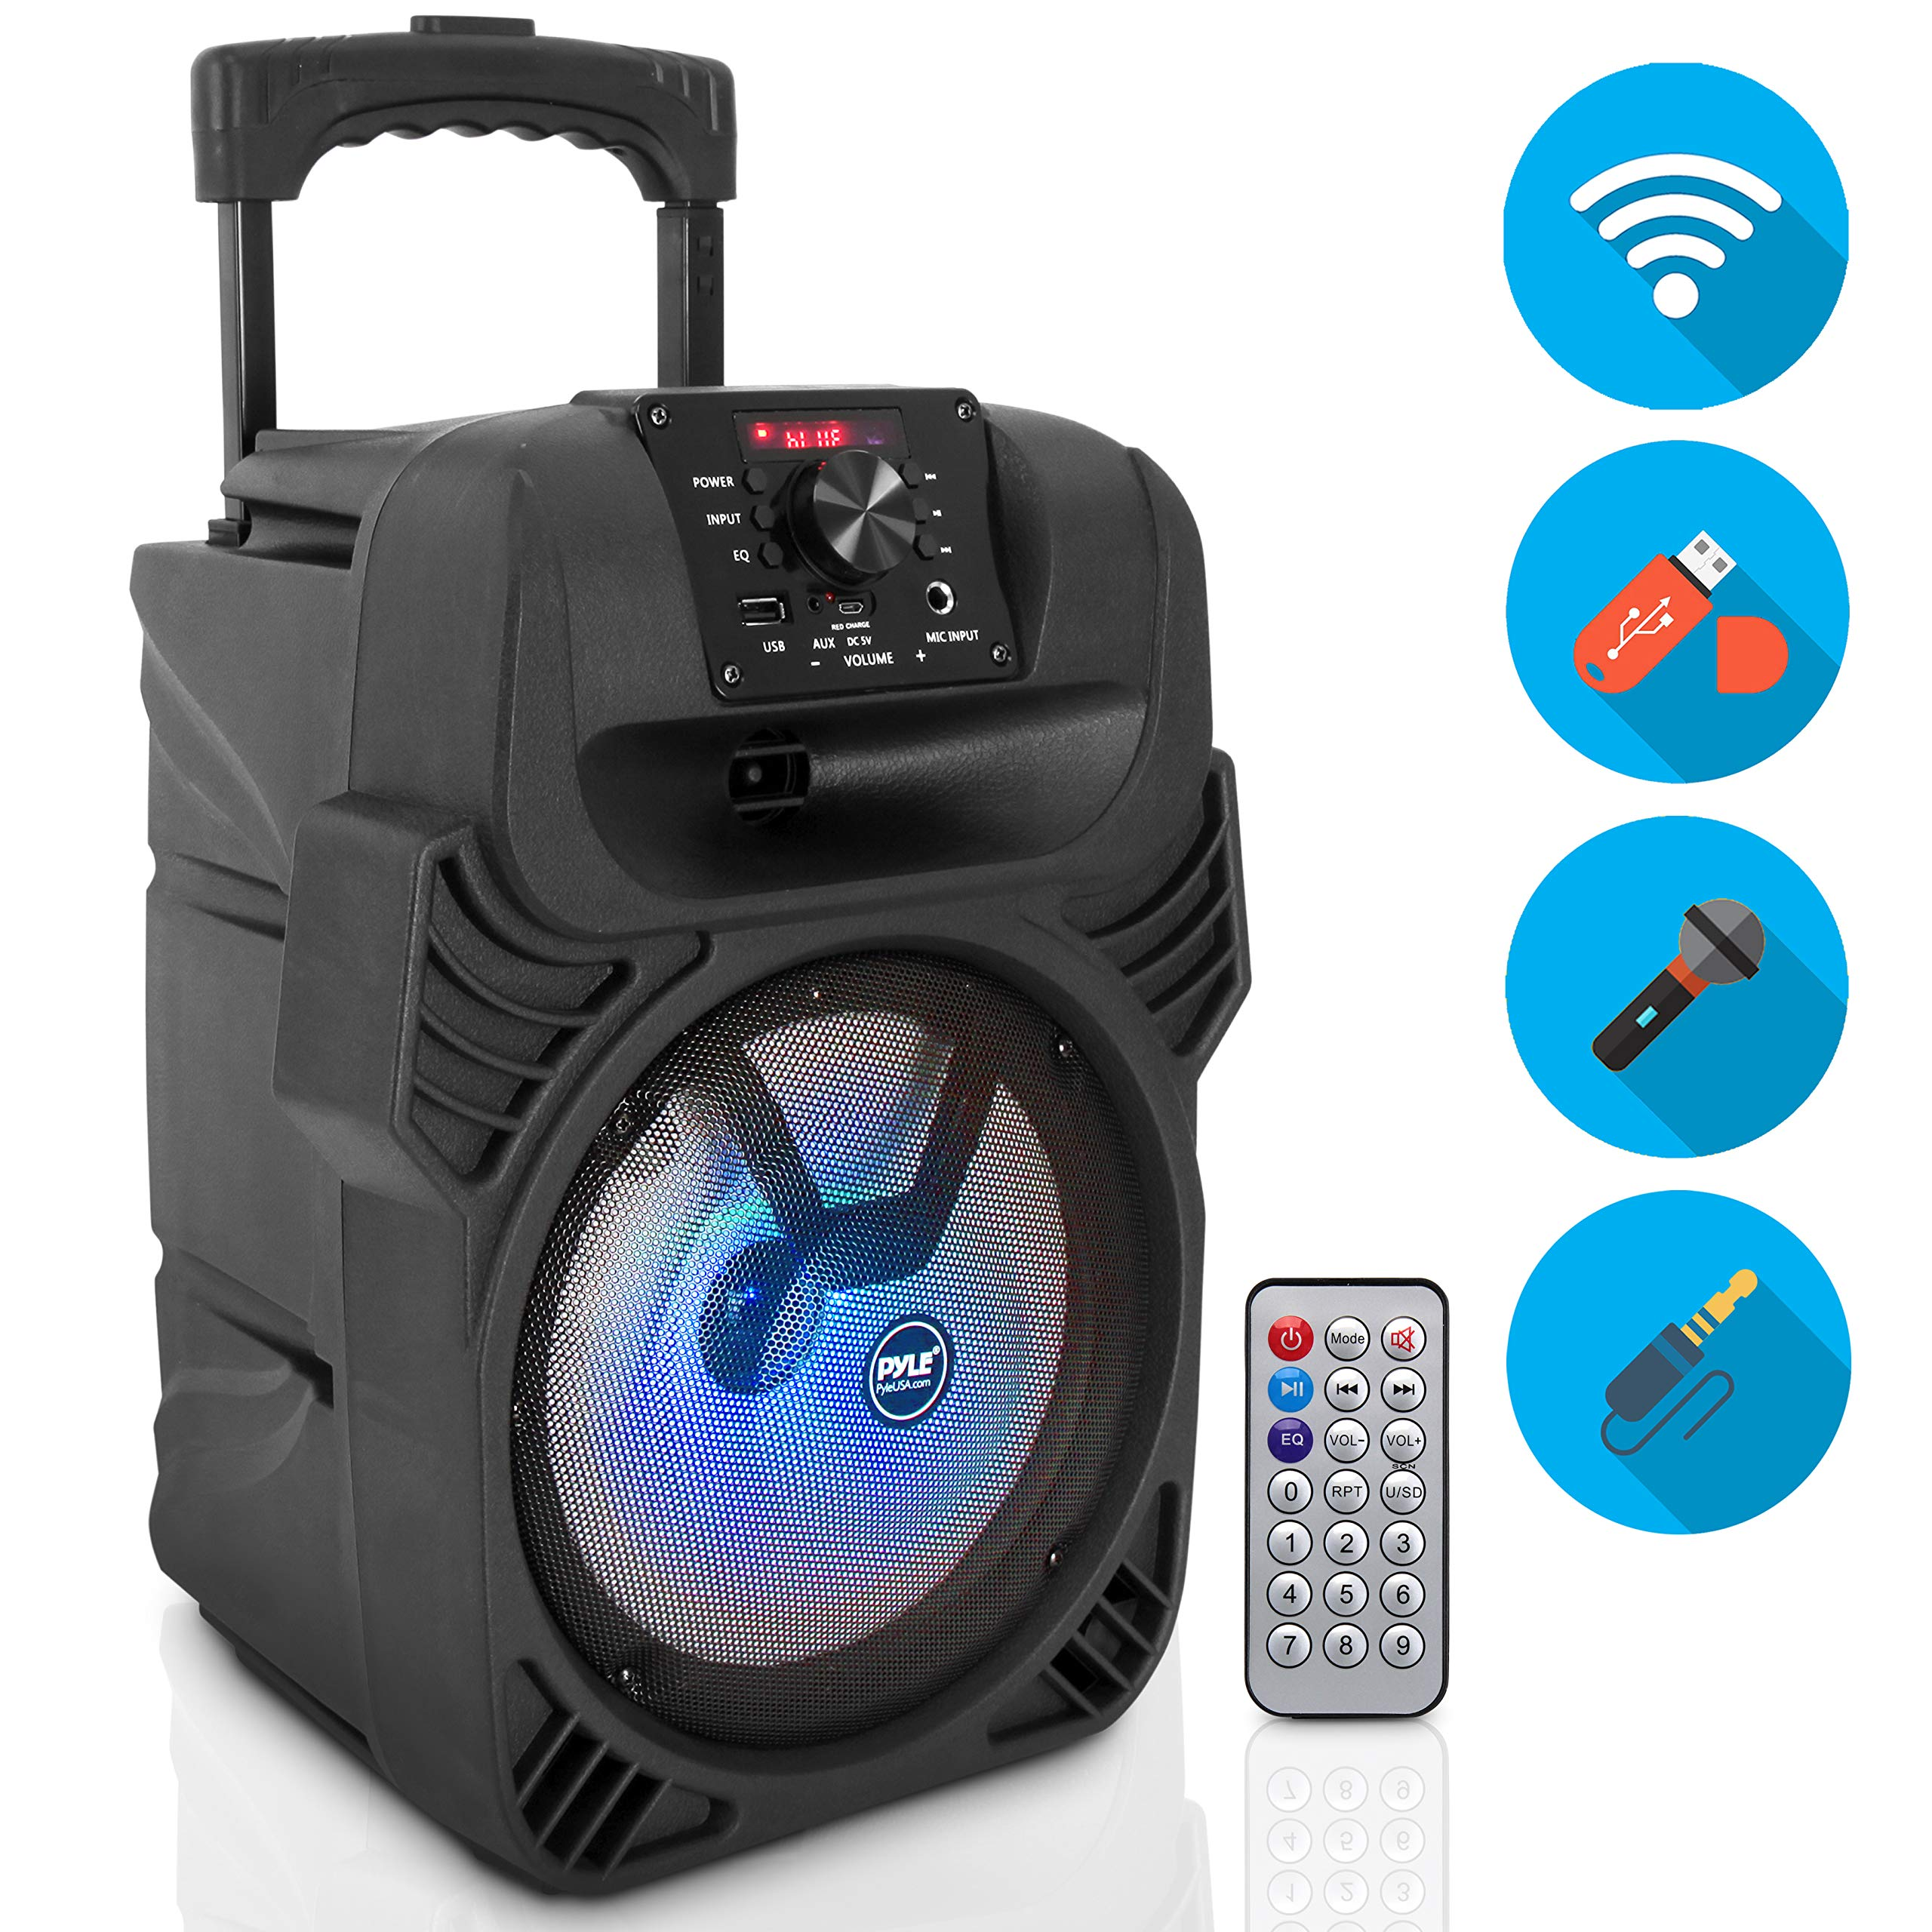 Pyle Portable Bluetooth PA Loudspeaker - 400W, 8'' Subwoofer System, 4 Ohm/55-20kHz, USB/MP3/FM Radio/ ¼ Mic Inputs, Multi-Color LED Lights, Built-in Rechargeable Battery w/ Remote Control